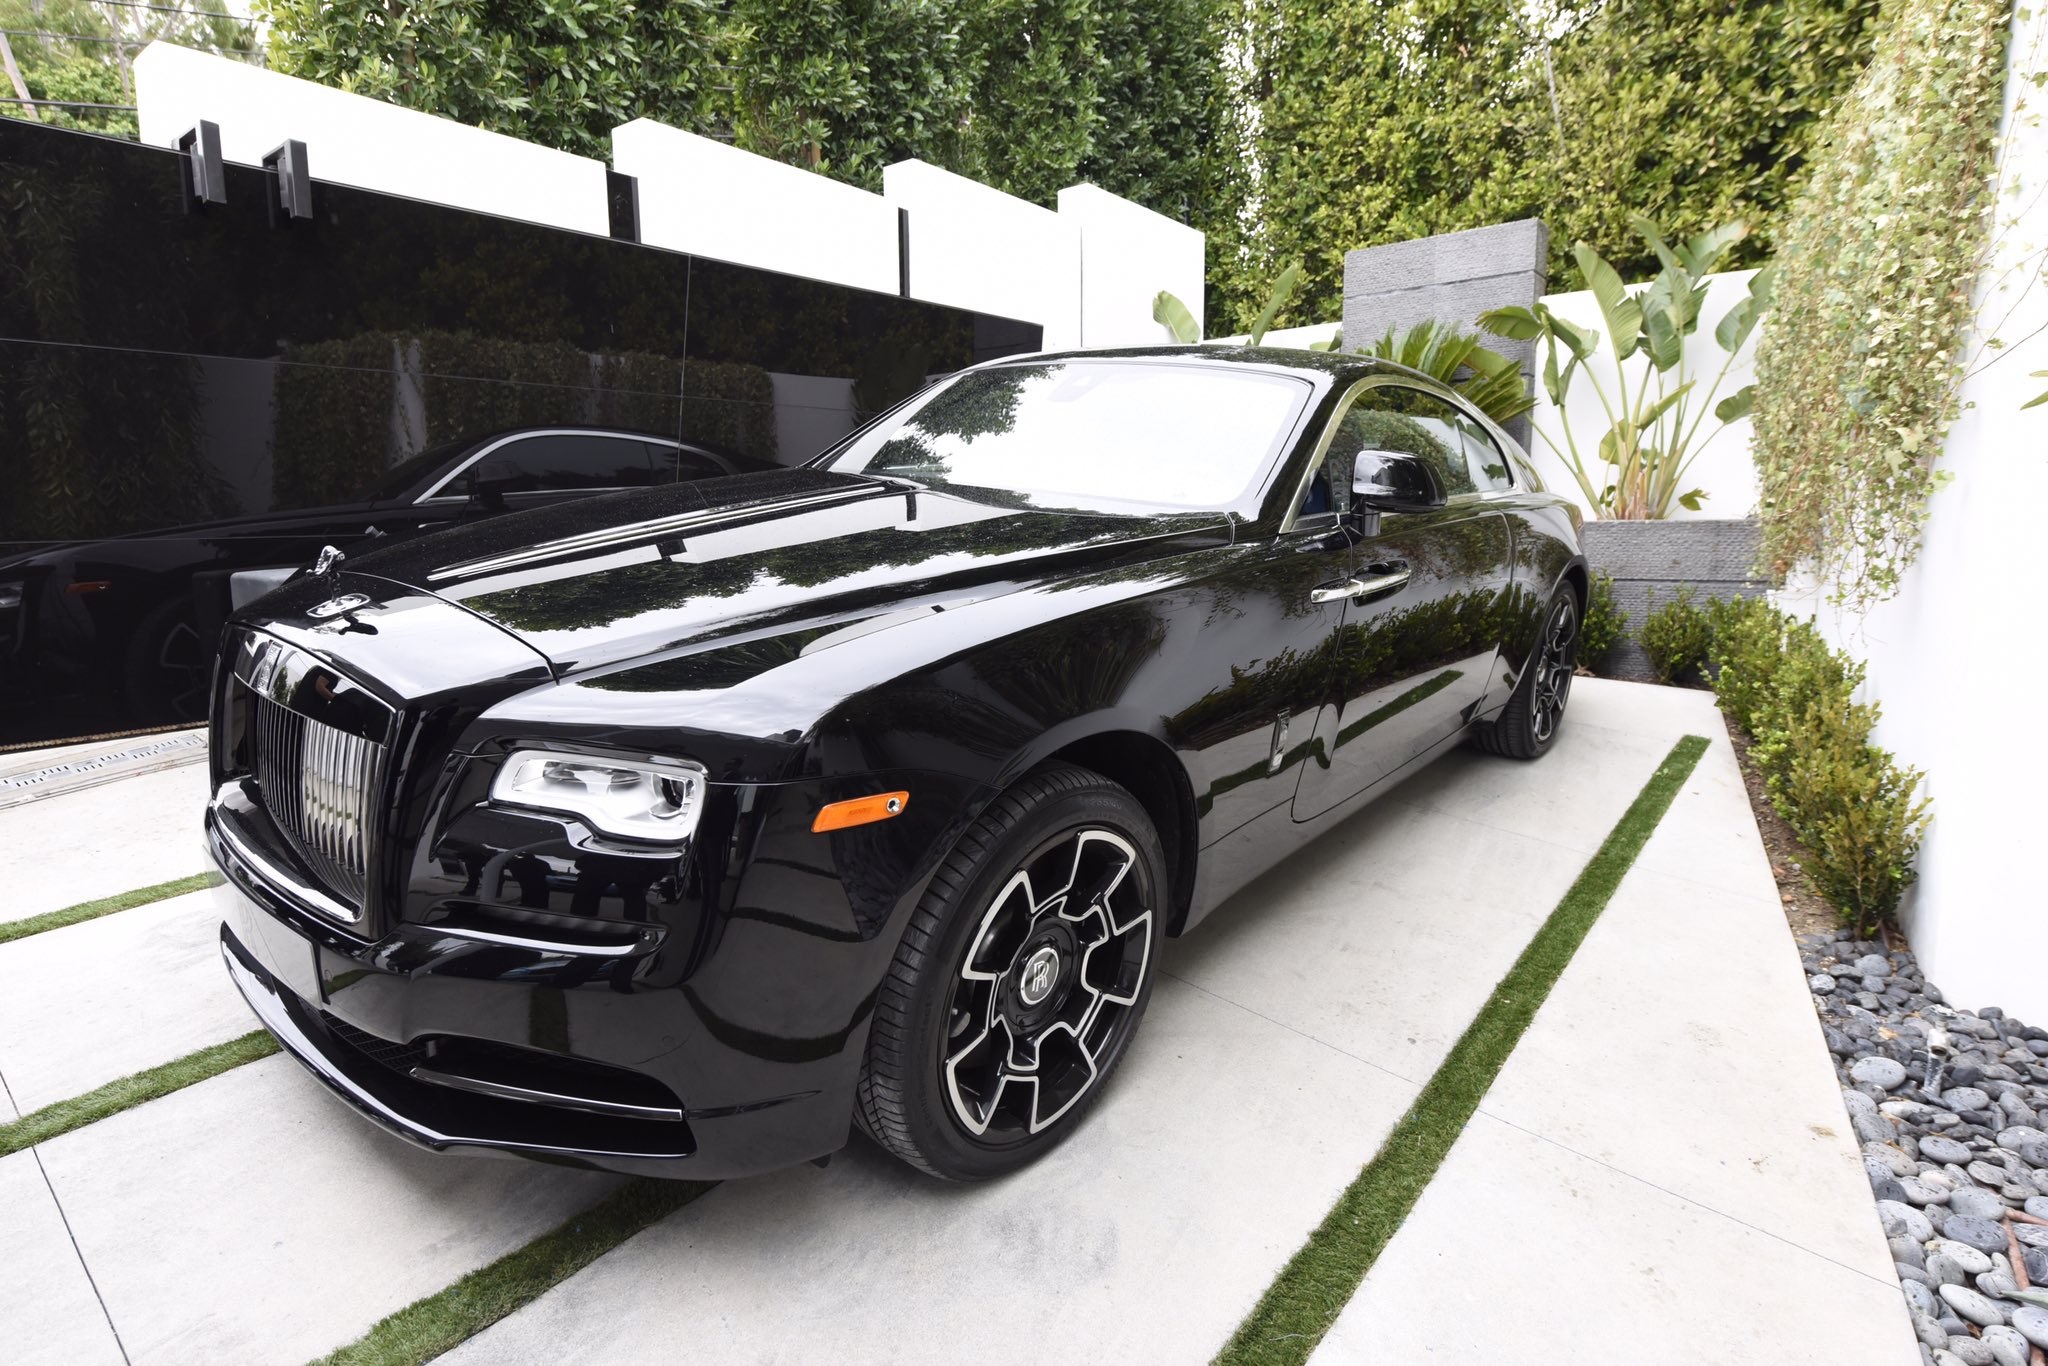 .@Epic_Records x @rollsroycemcna x @hauteliving #GRAMMYs #RollsRoyce #blackbadge #Wraith https://t.co/d1f6suTbeT